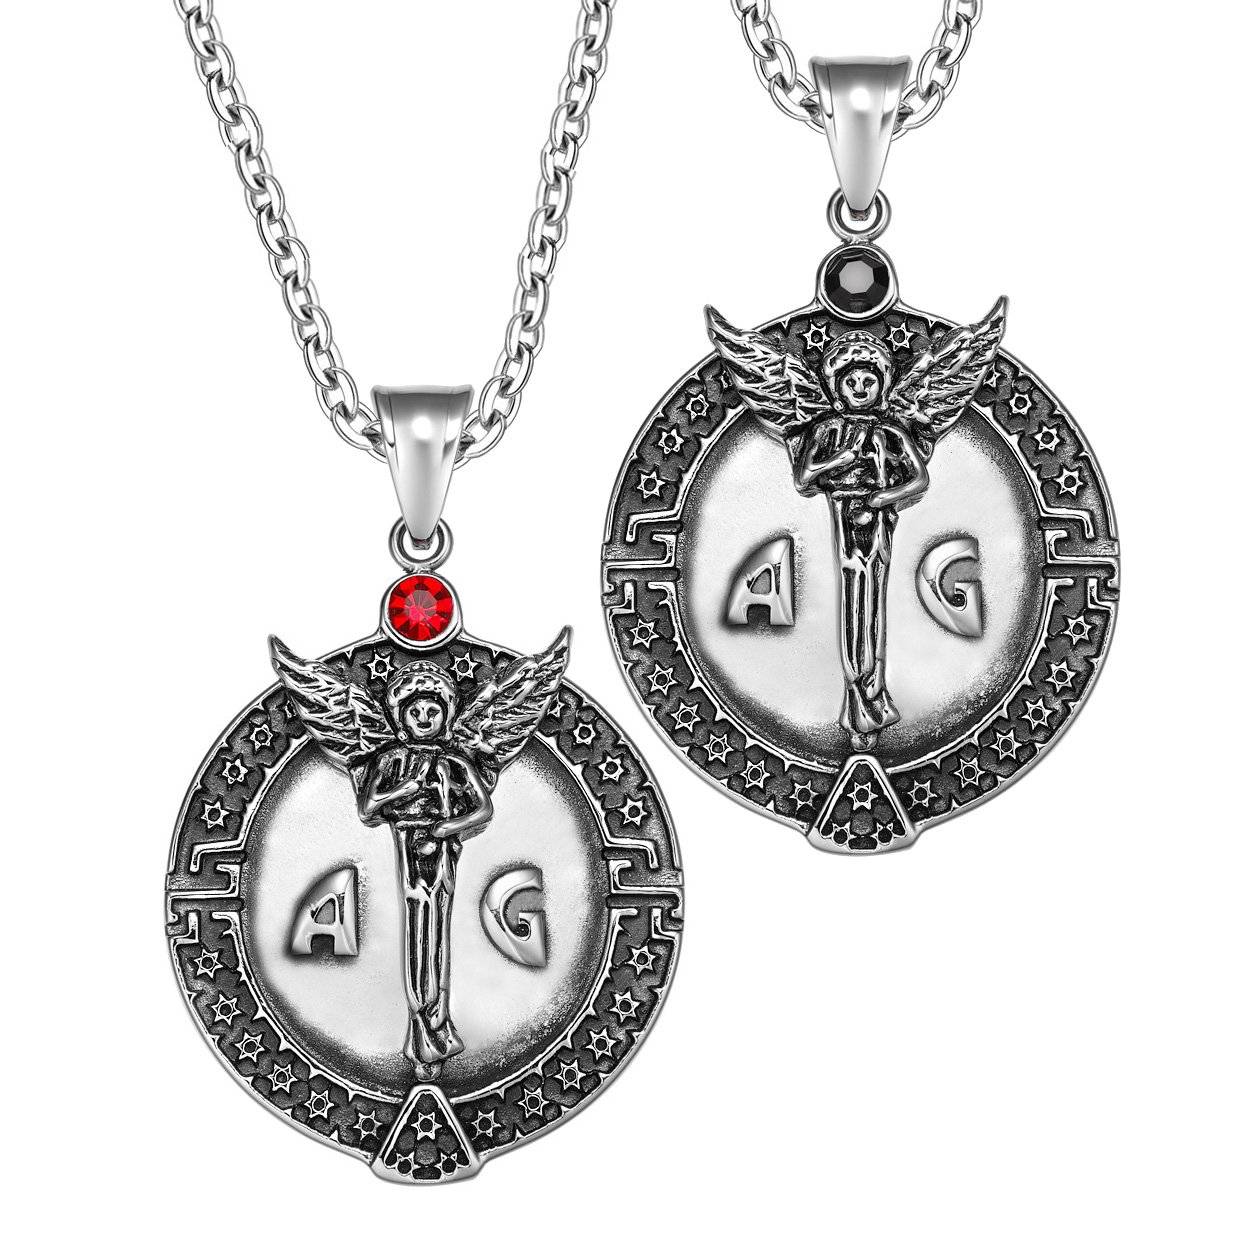 Archangel Michael Star of David Accents Love Copules or Best Friends Amulets Set Black Red Necklaces